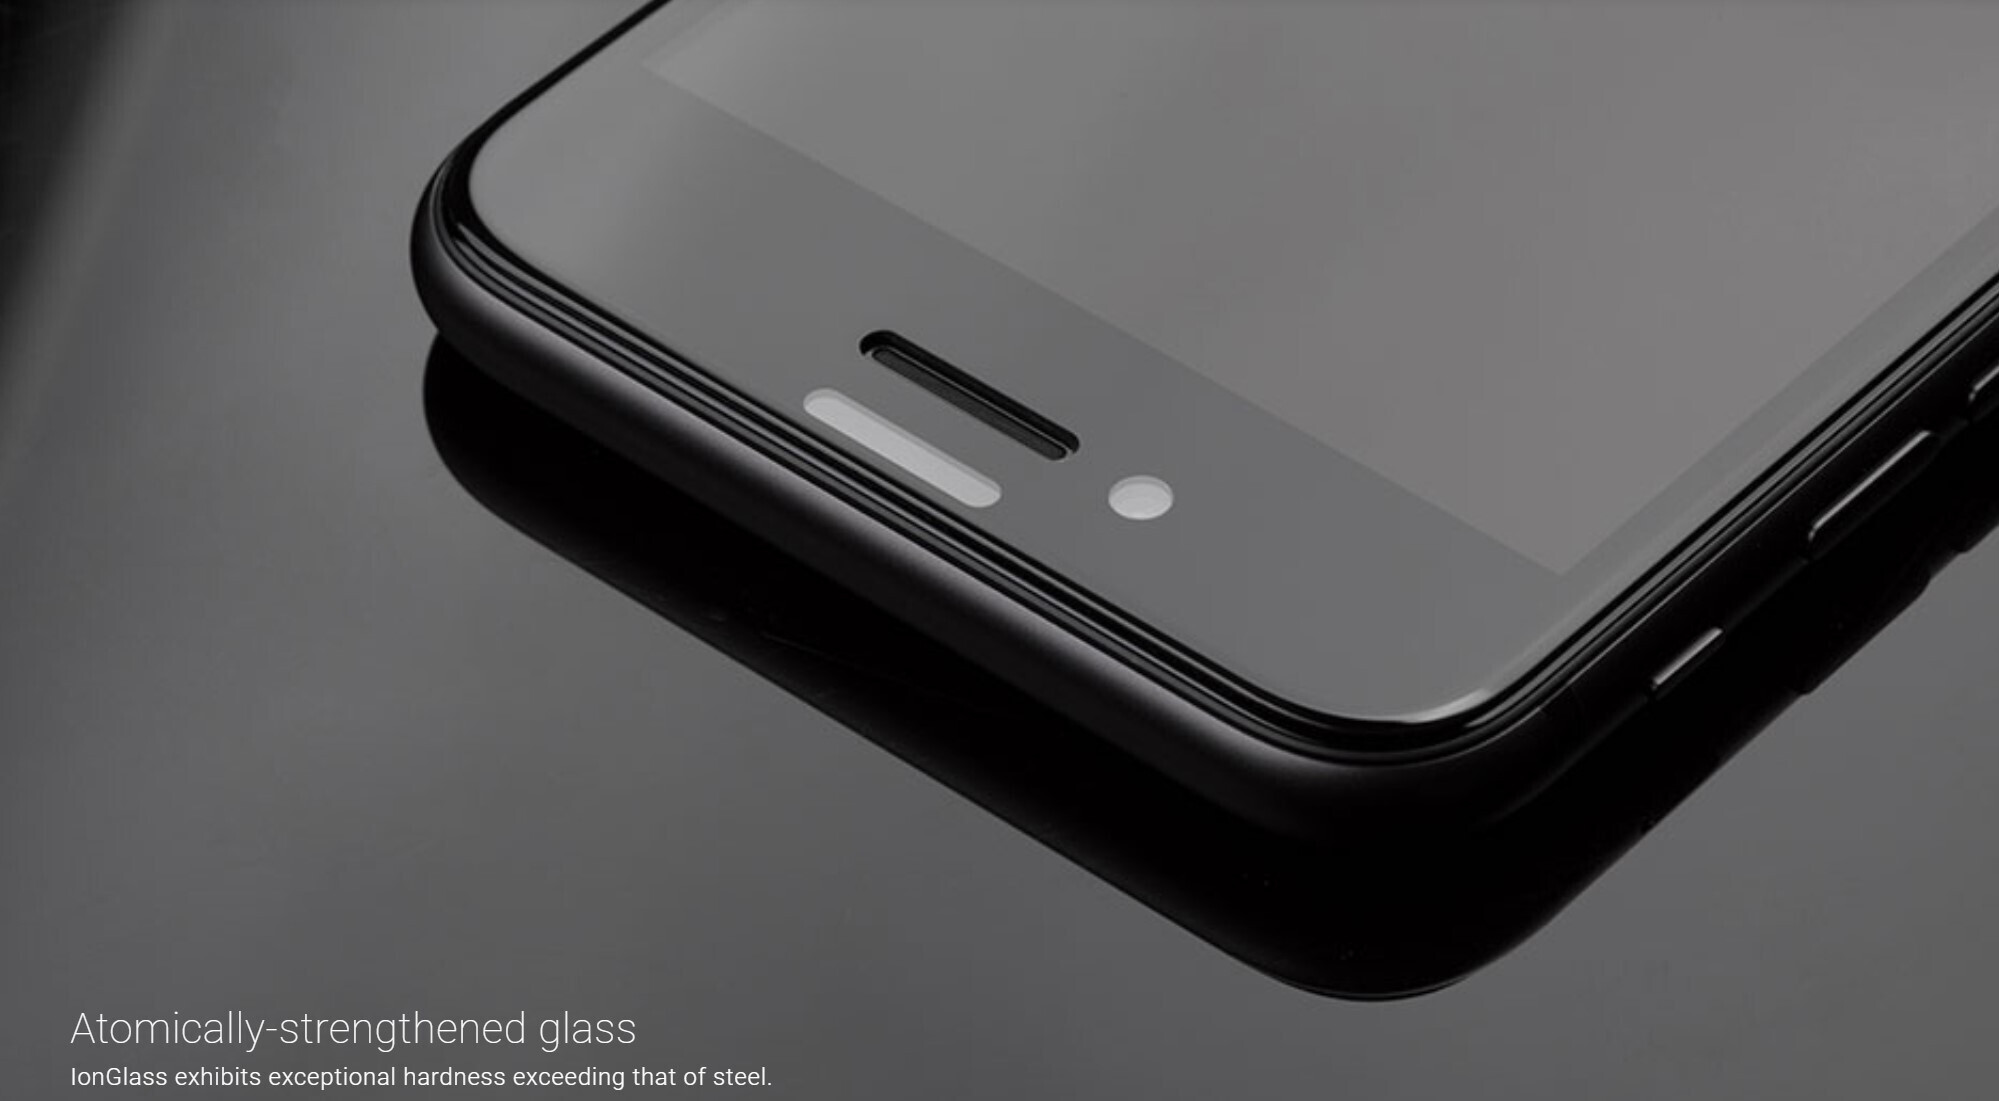 Moshi IonGlass protector for iPhone SE 2020 - The best Apple iPhone SE 2020 cases and screen protectors